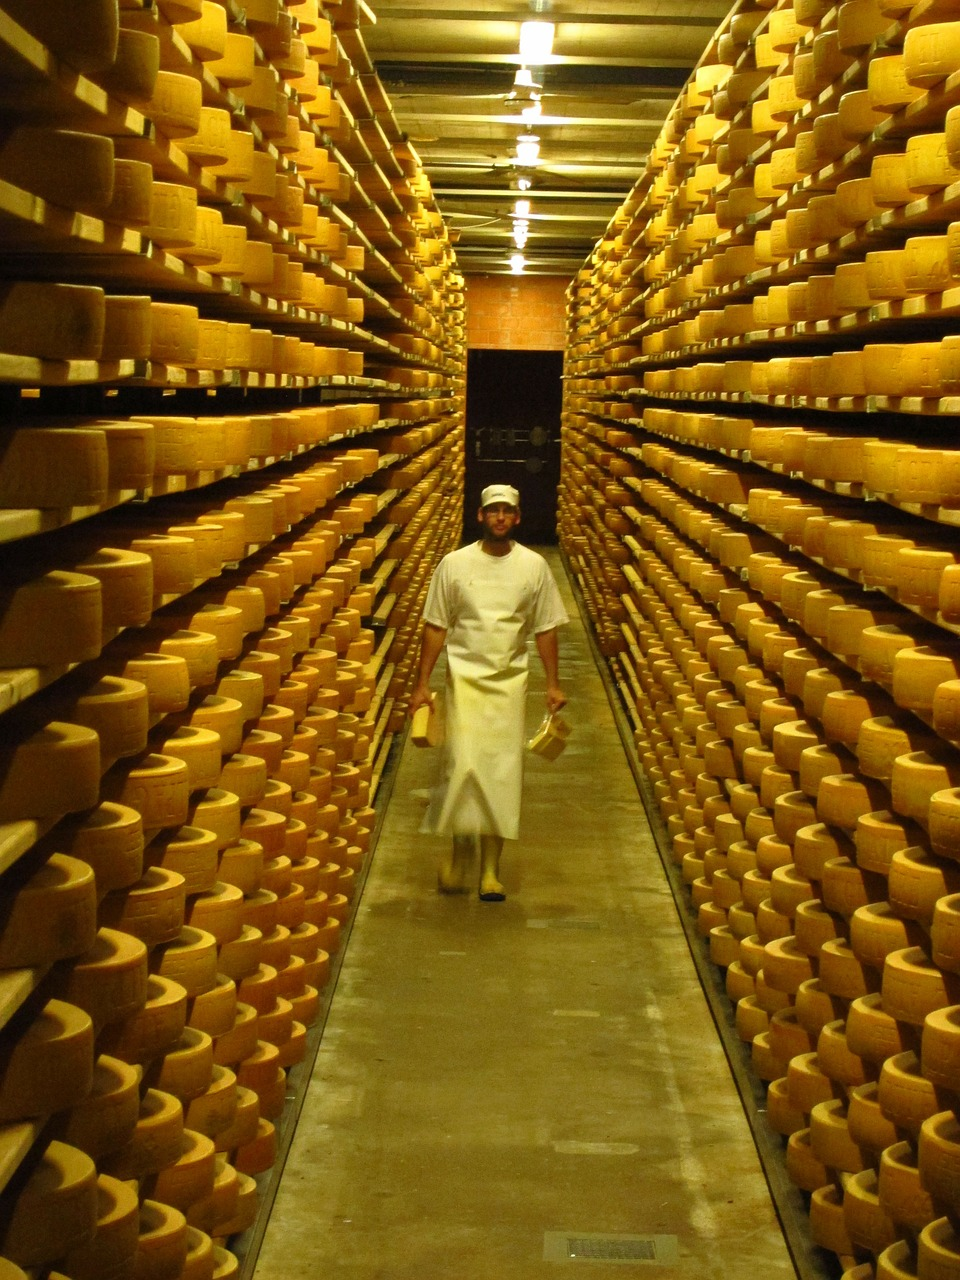 Cheese factory- picture from internet